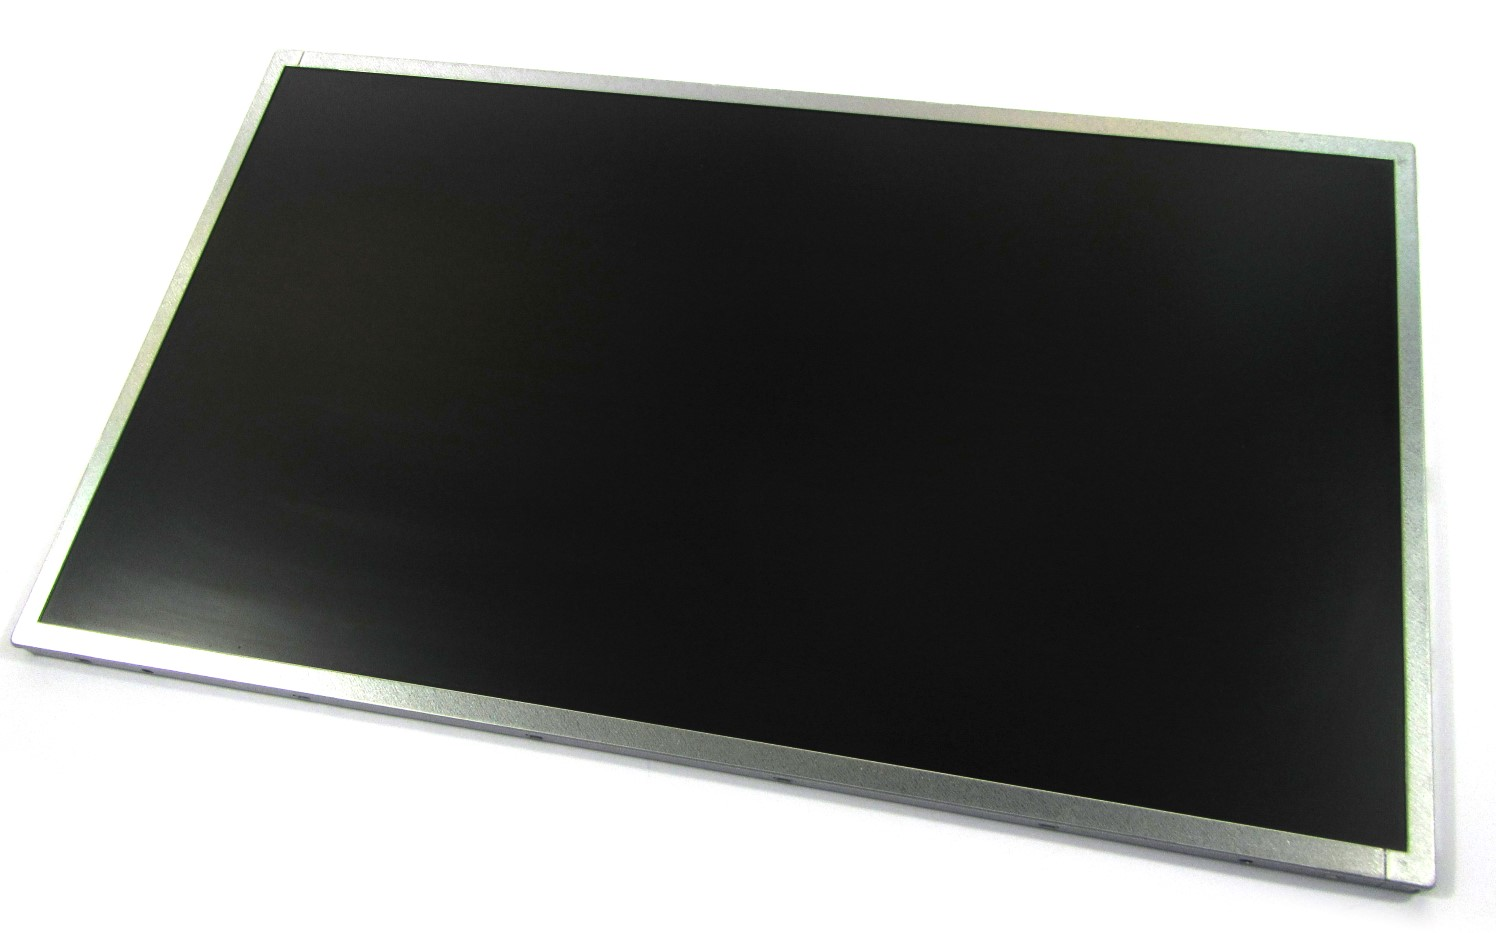 "M200FGE-L20 Chimei Innolux 20"" TFT LCD Antiglare Panel Screen - Rev:C2"